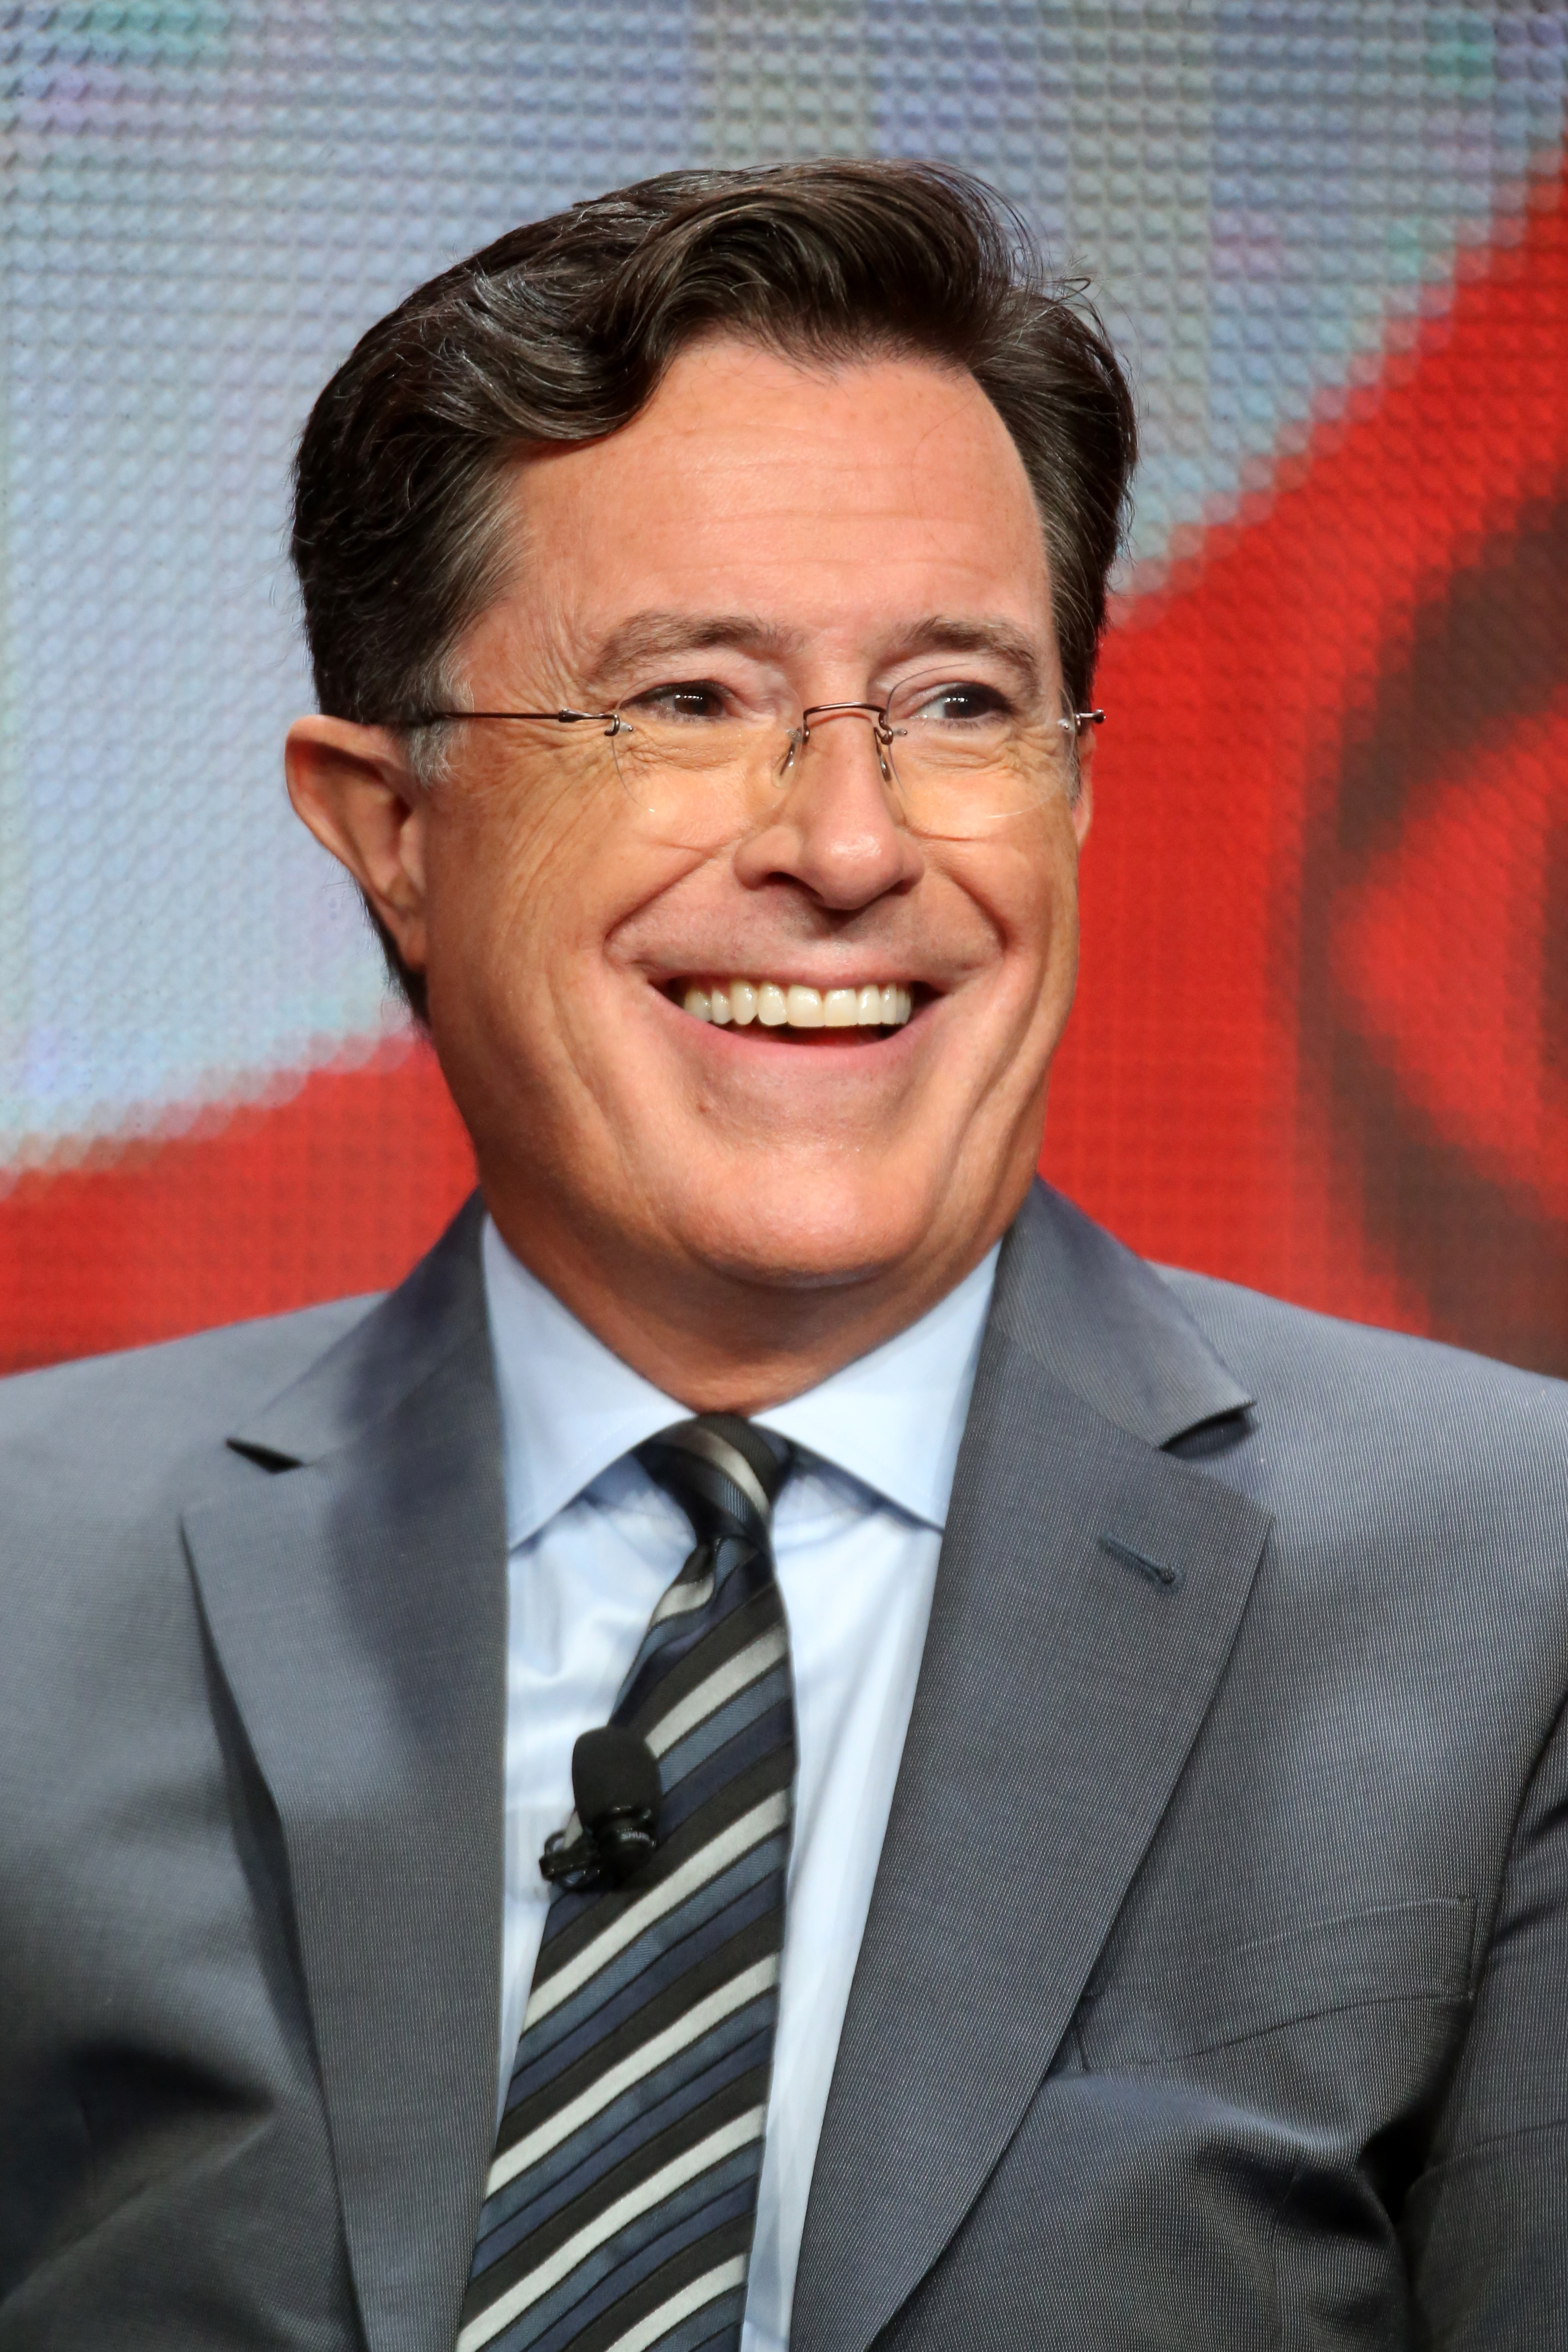 Stephen Colbert speaks onstage during the 'The Late Show with Stephen Colbert' panel discussion in Los Angeles on Aug. 10, 2015.